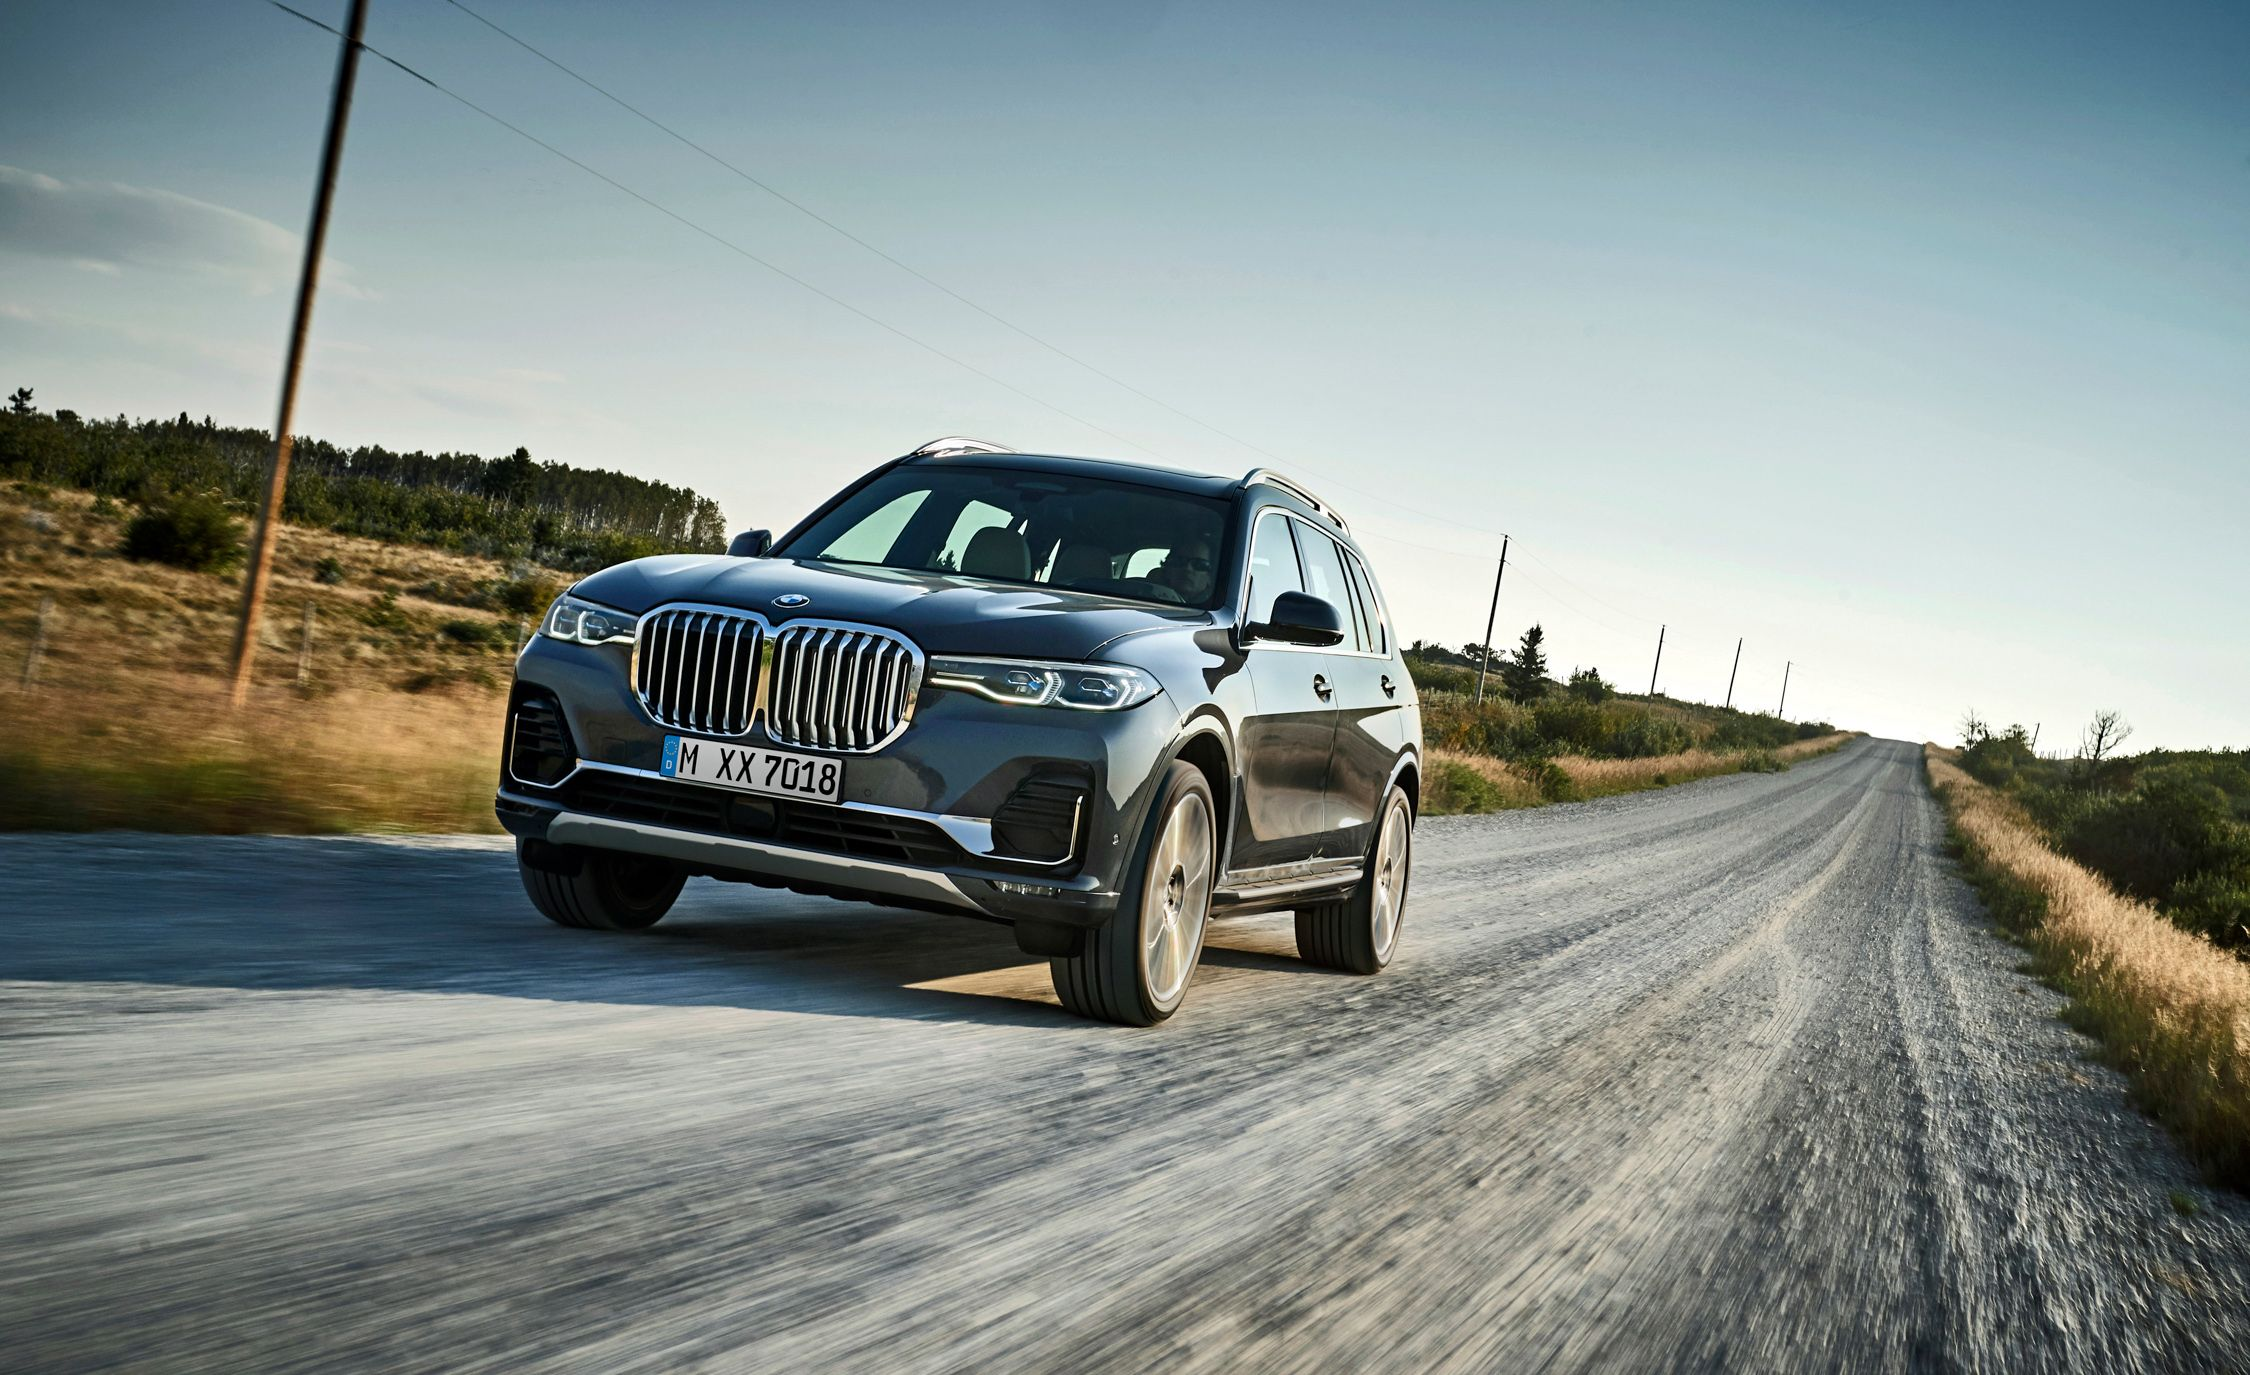 2019 Bmw X7 Reviews Bmw X7 Price Photos And Specs Car And Driver